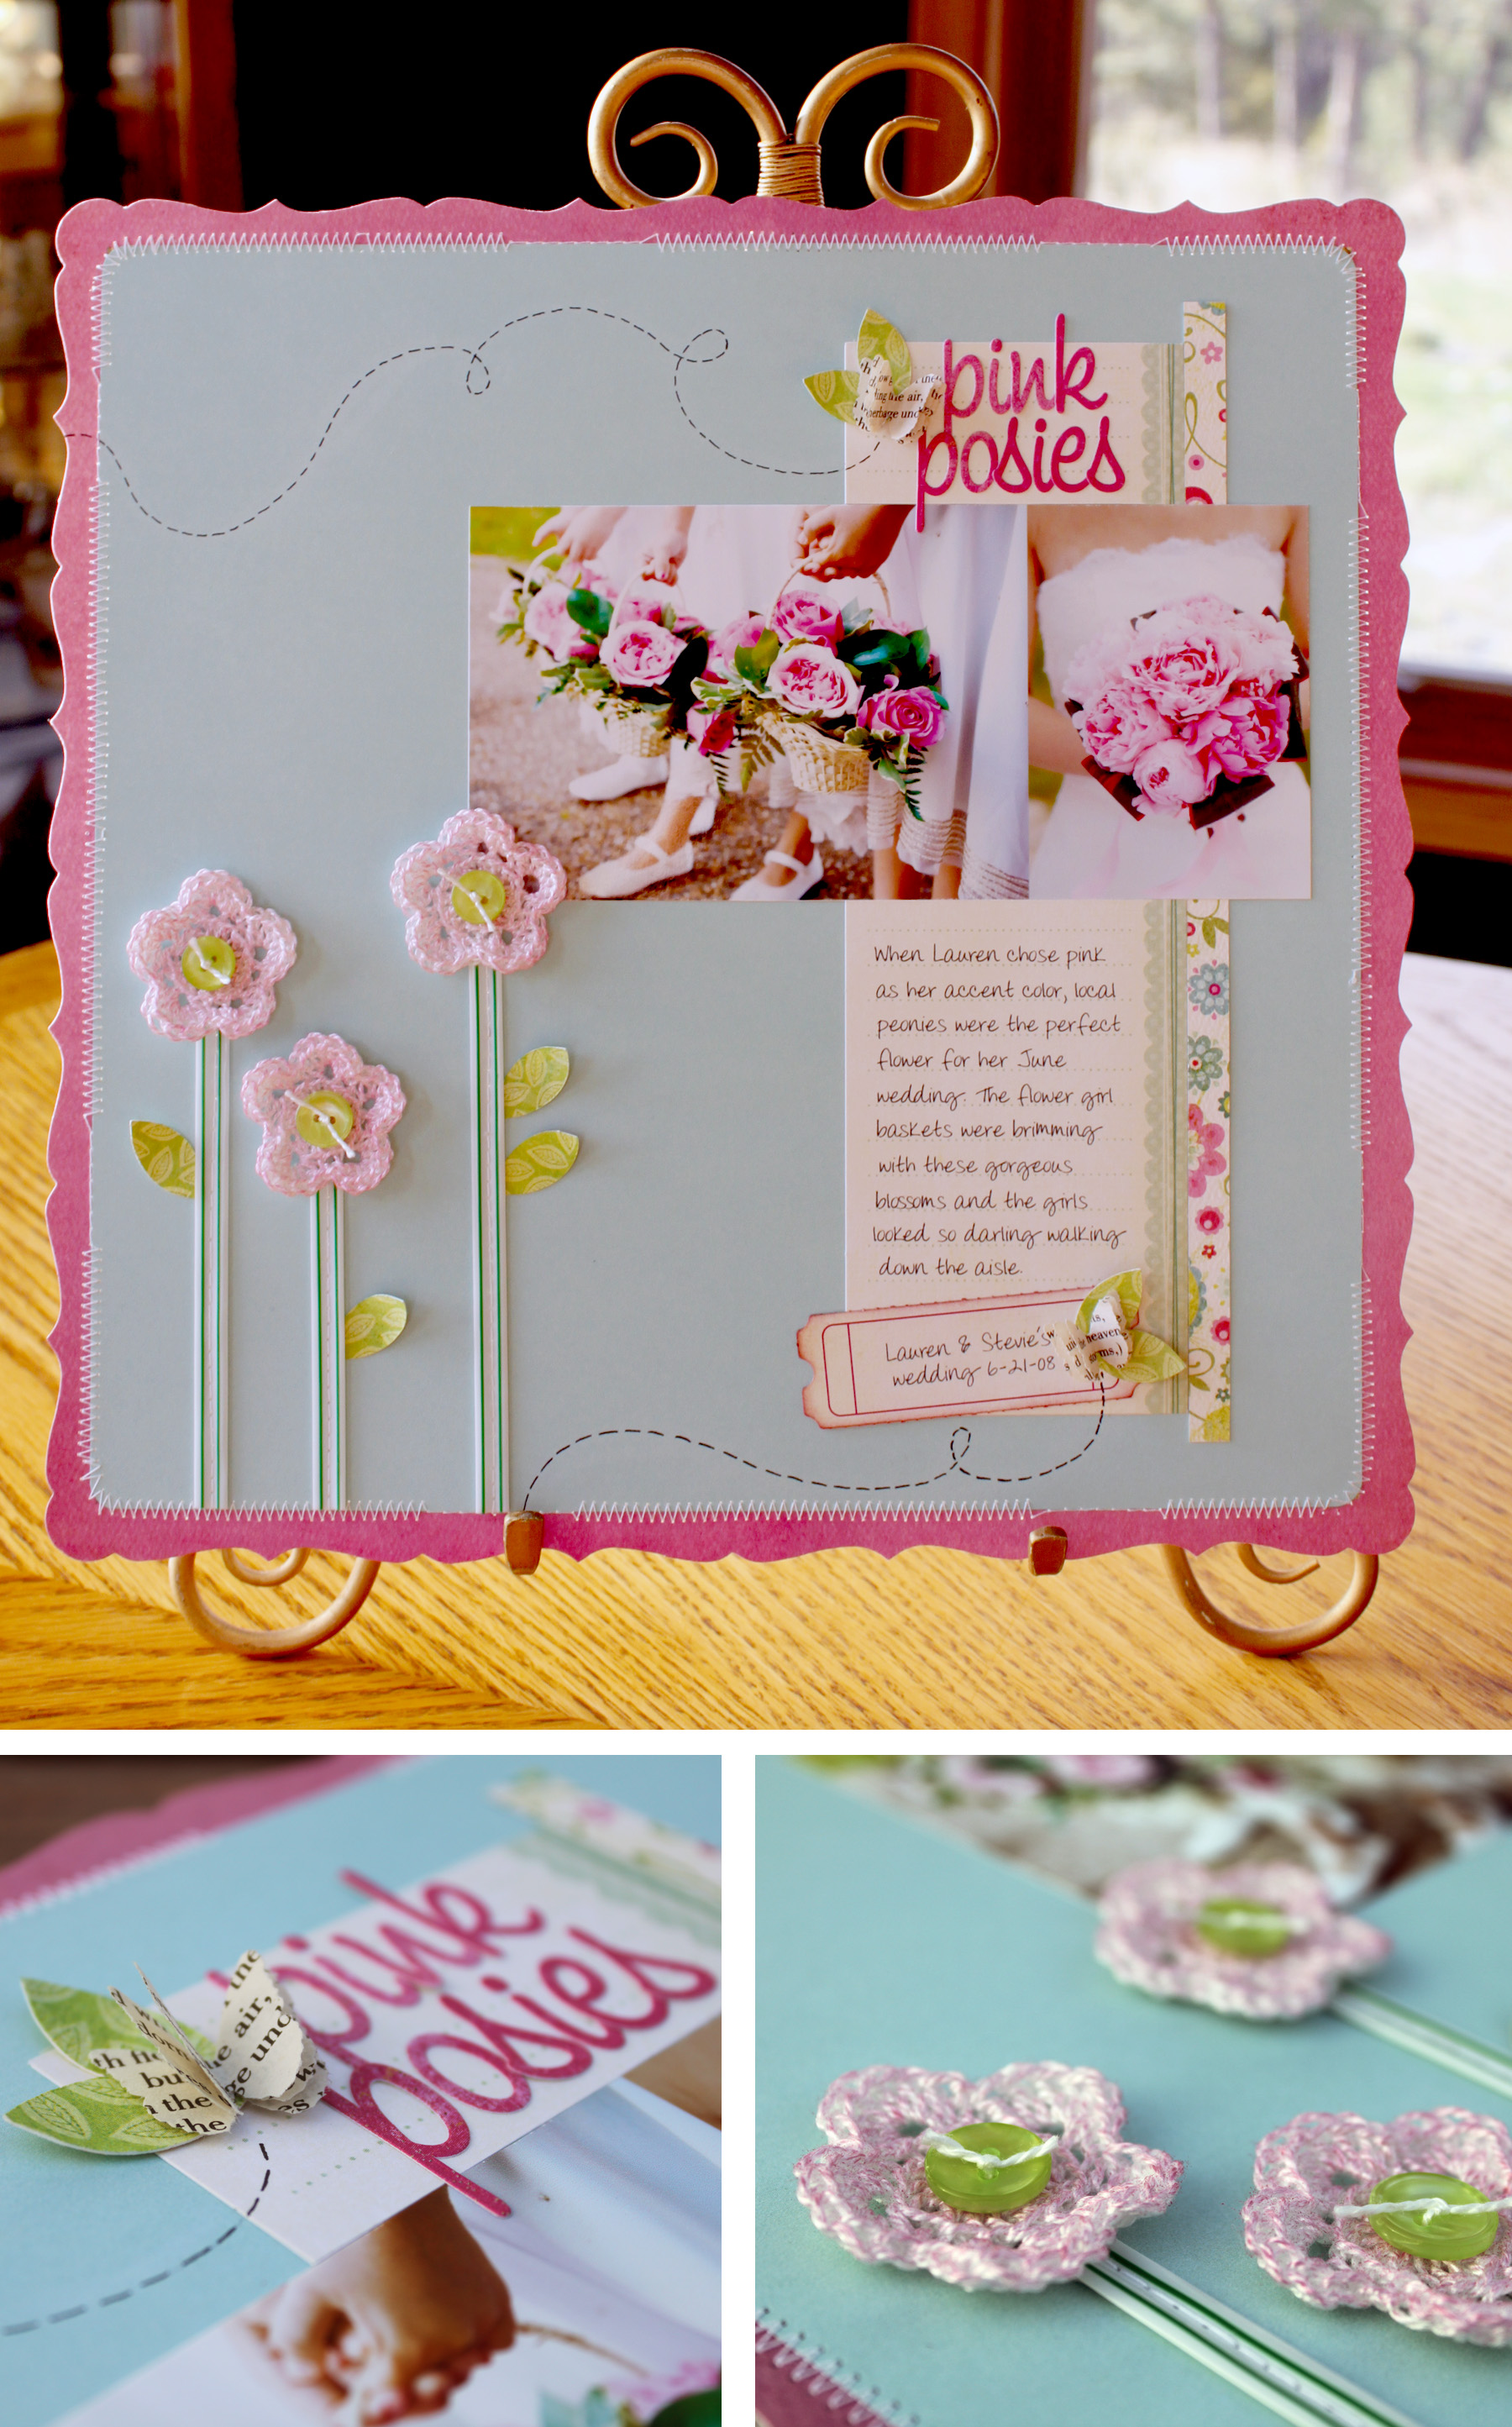 Scrapbook ideas with flowers - Pink Posies